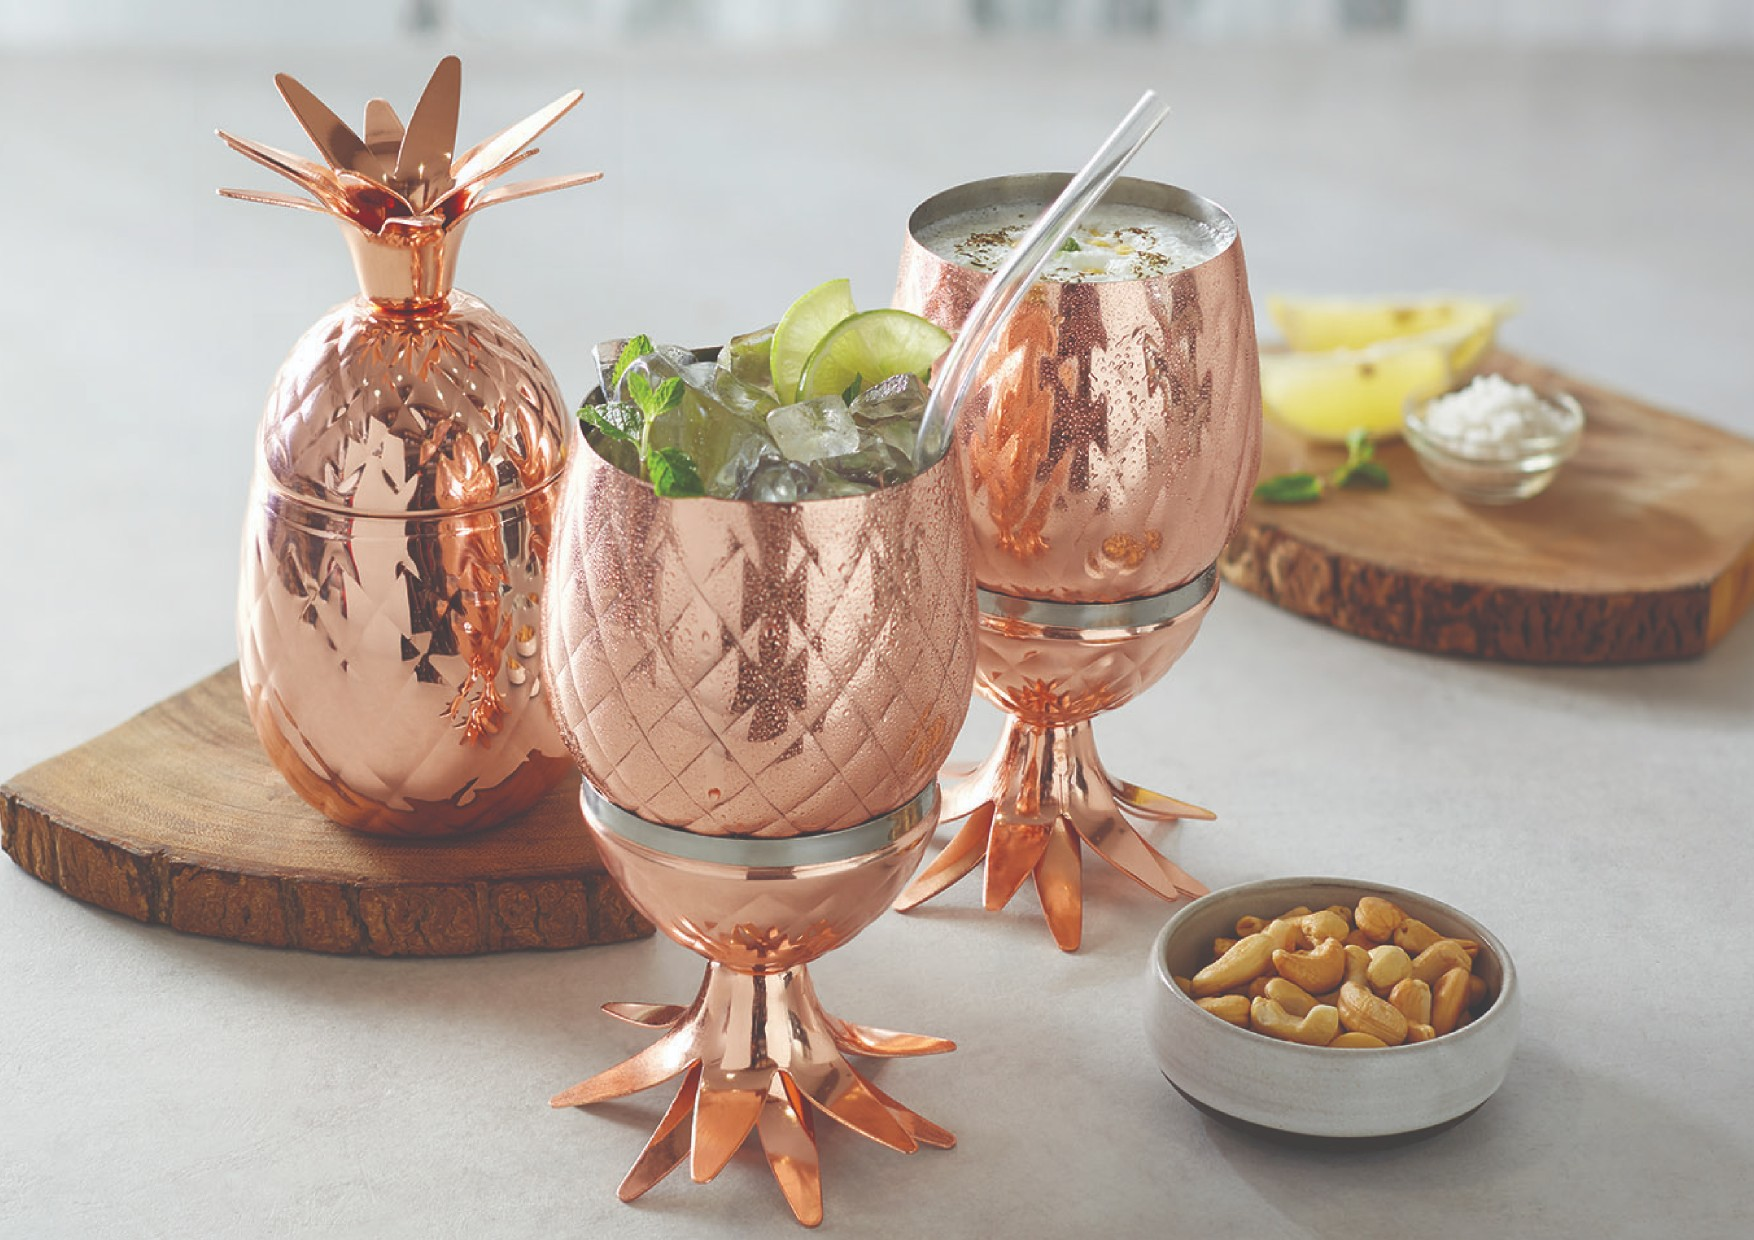 Pineapple Tumbler Stainless steel Glasses & Tumblers in Copper Colour by Songbird